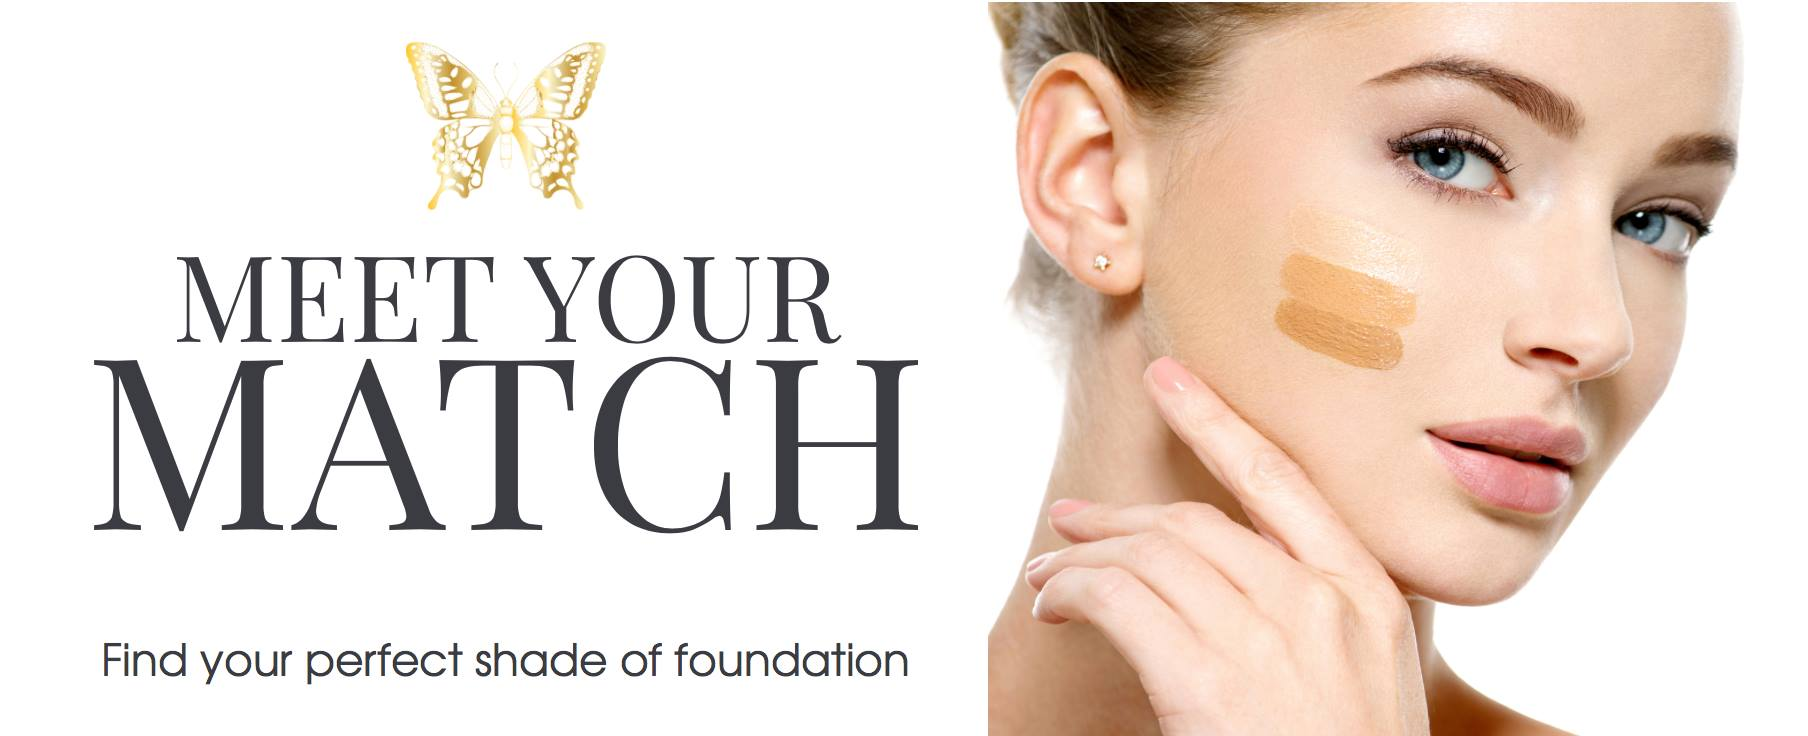 Meet Your Match-Find Your Perfect Foundation